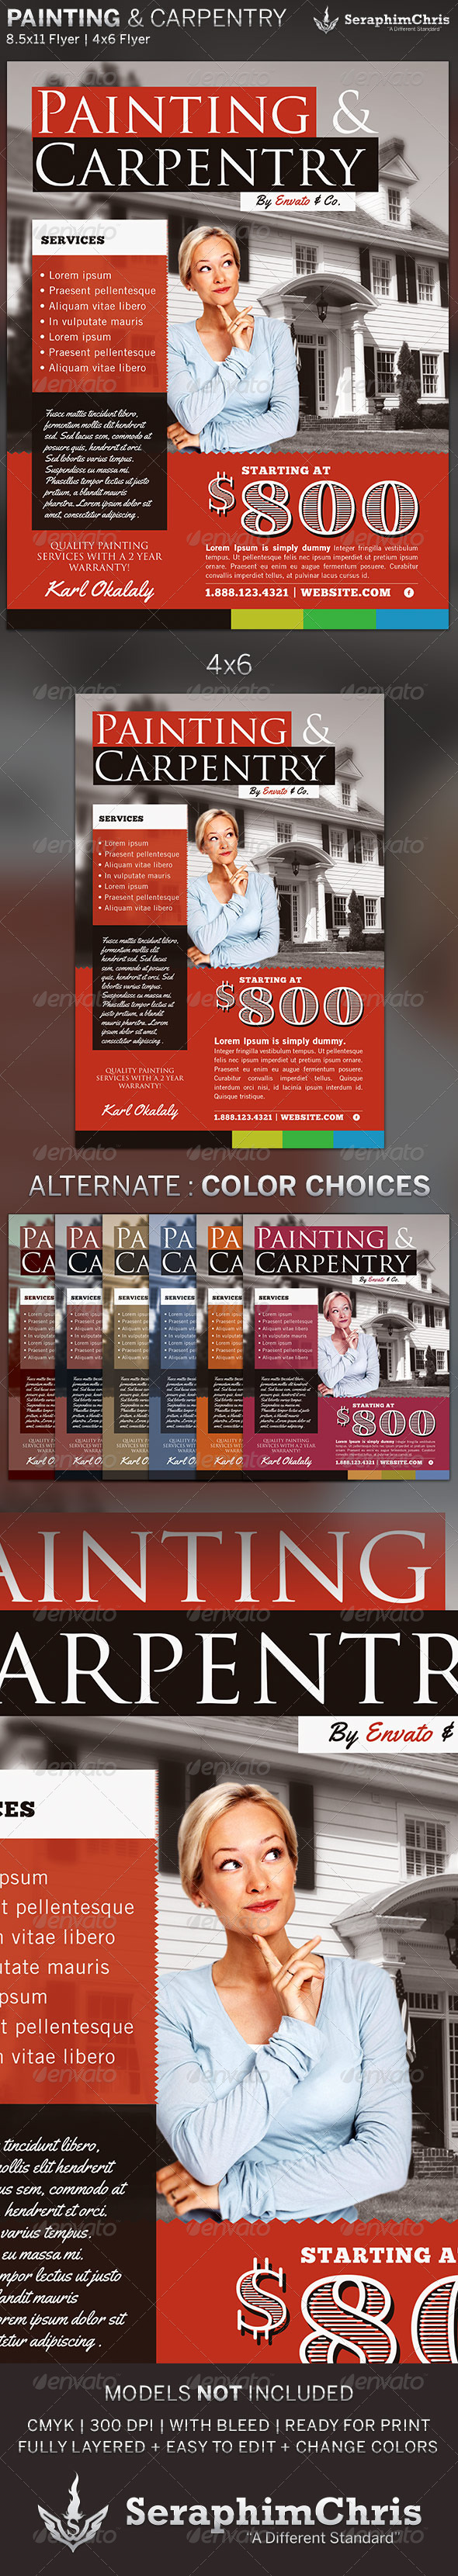 GraphicRiver Painting & Carpentry Flyer Template 5393463